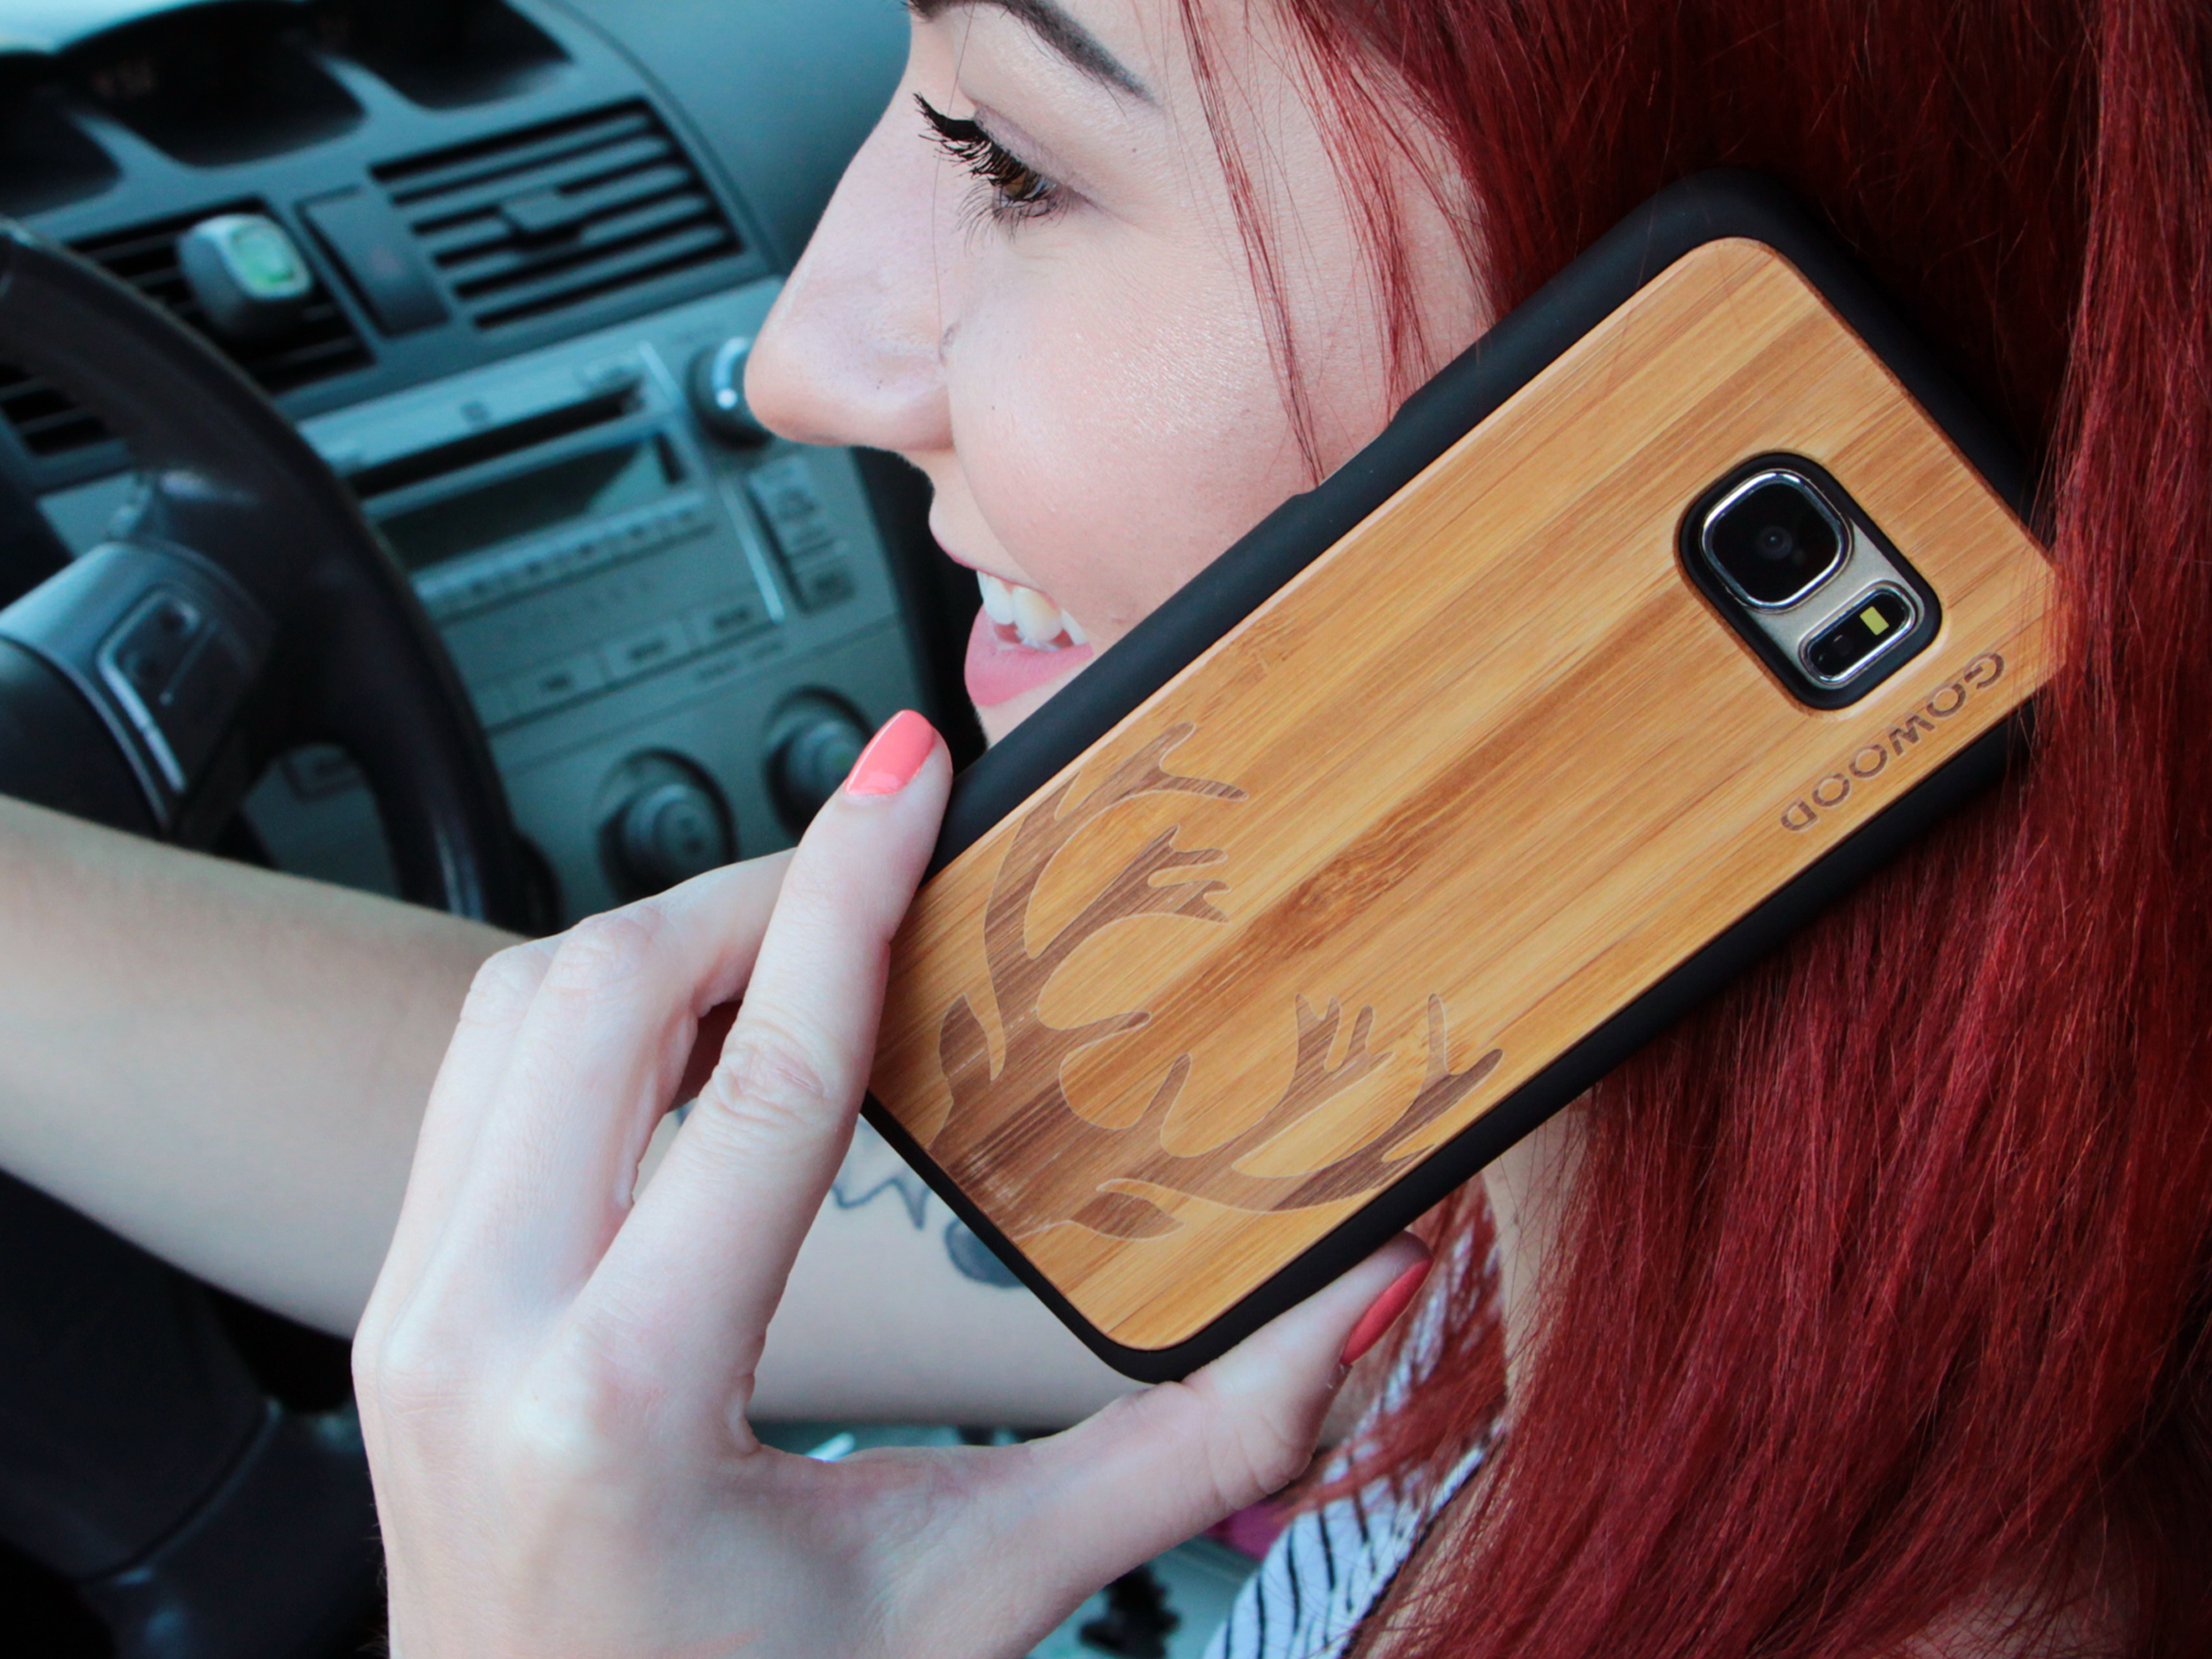 Samsung Galaxy S7 Edge wood case deer user 2